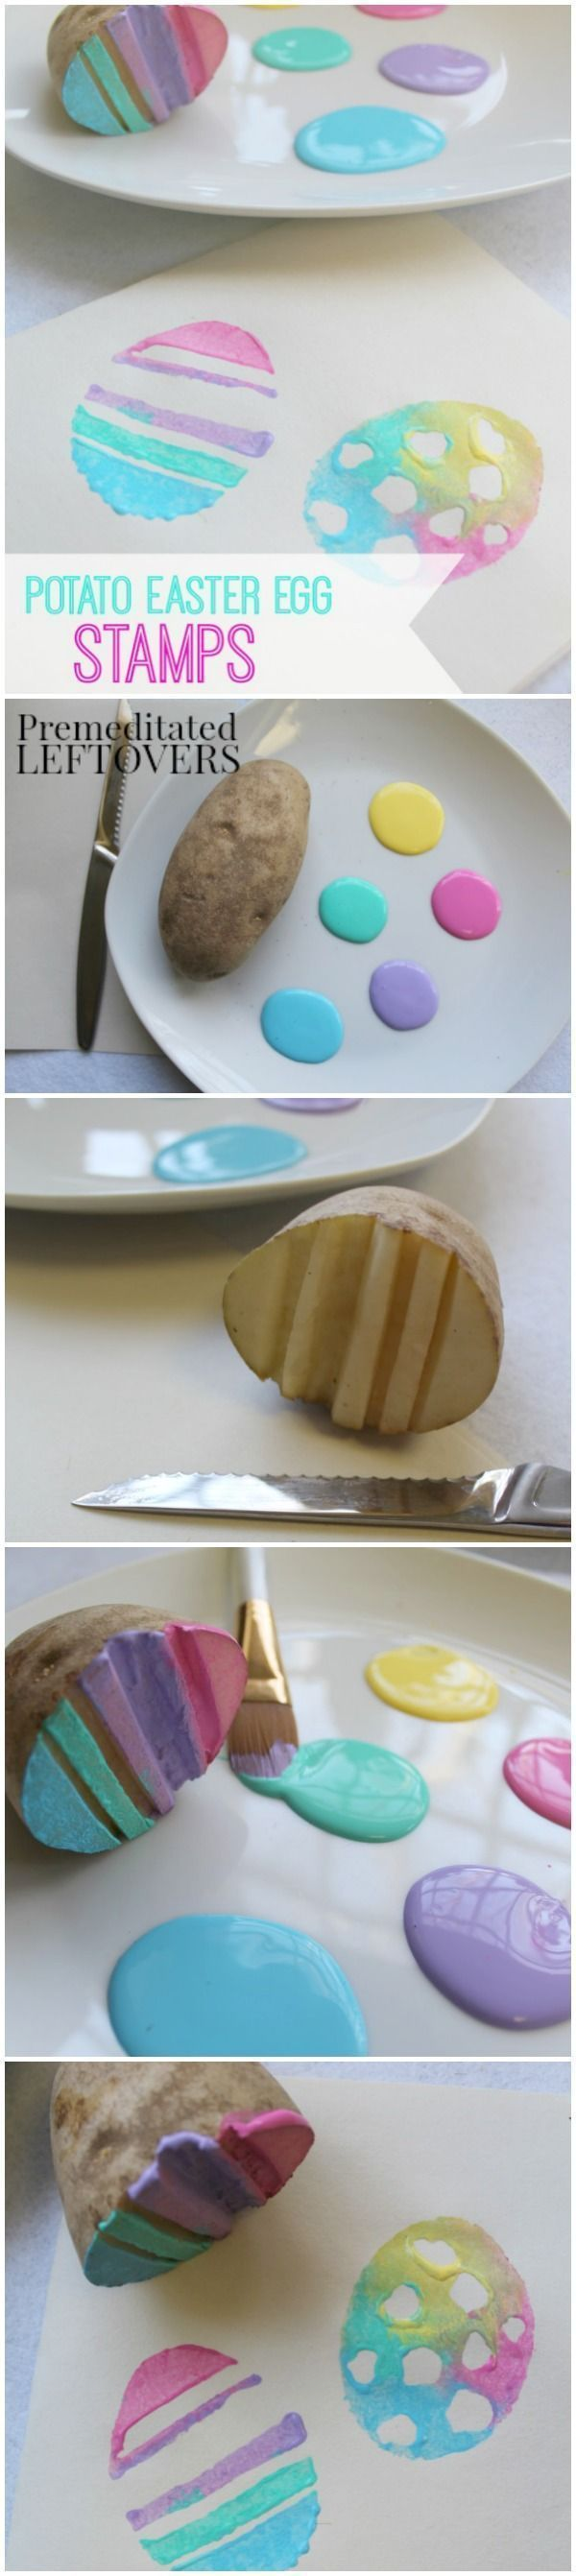 12 best Easter images on Pinterest | Day care, Easter party and Easter